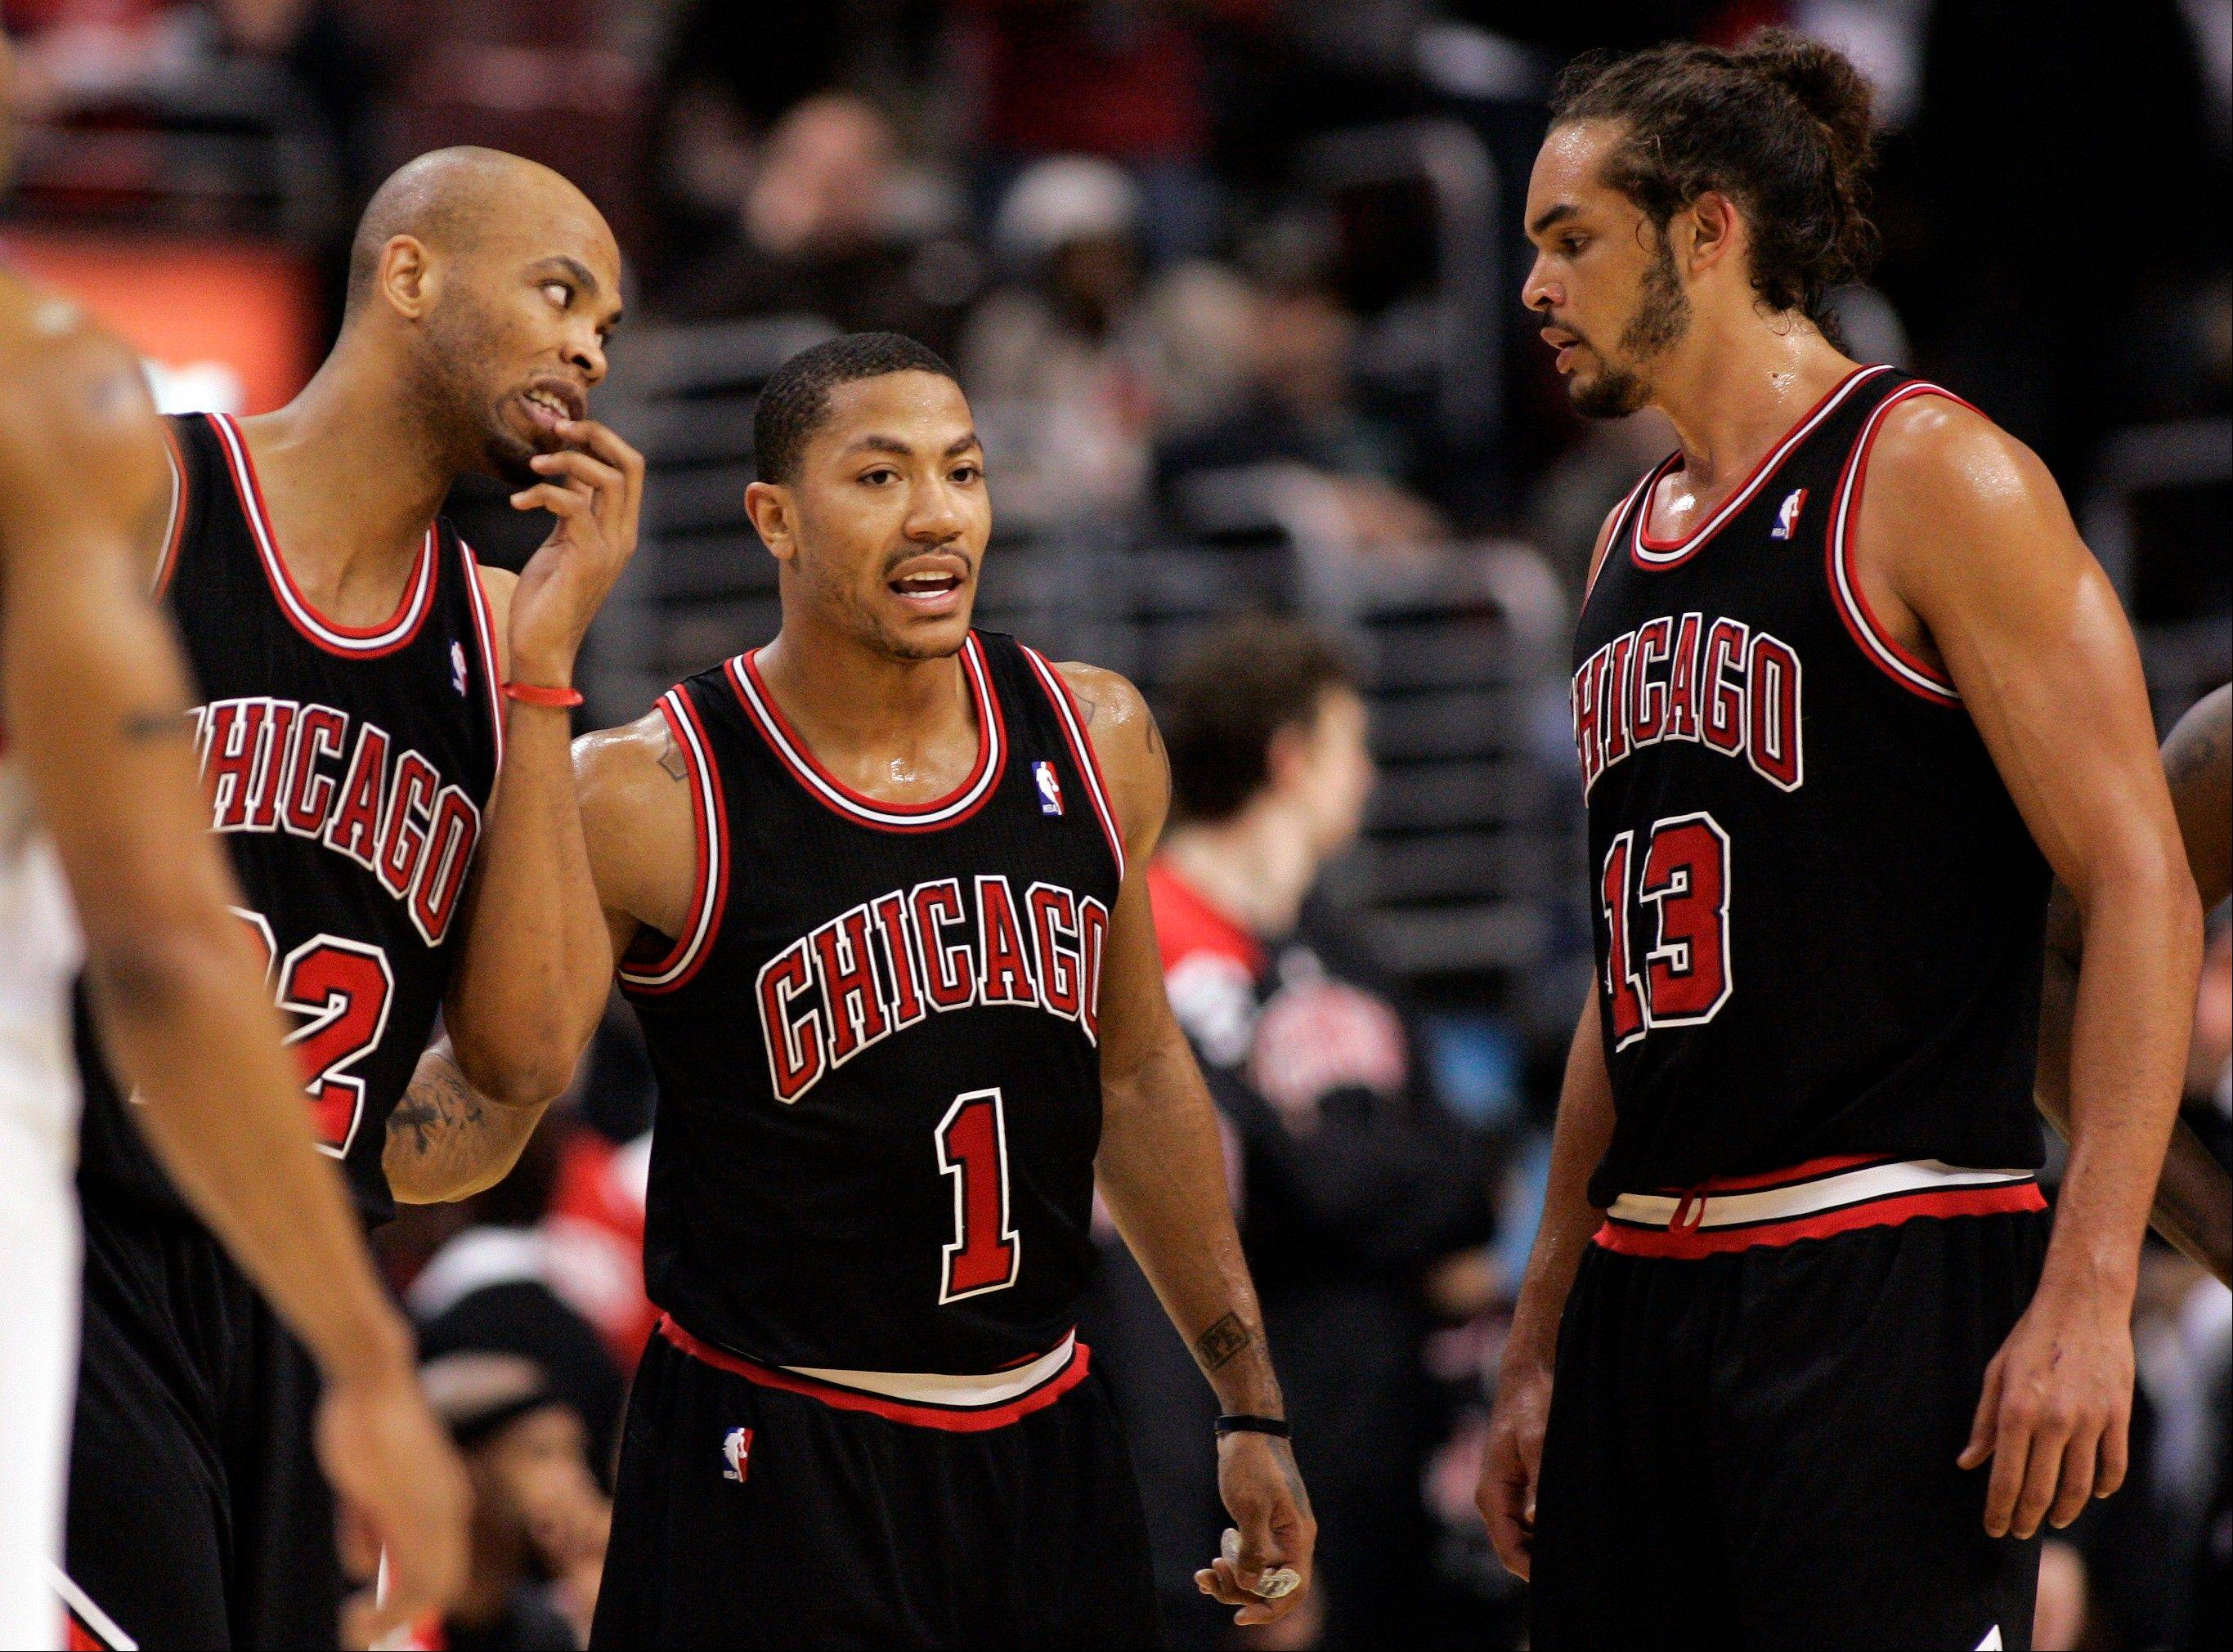 Chicago Bulls forward Taj Gibson, left, guard Derrick Rose and center Joakim Noah huddle in the last minute of Sunday's second half against the Philadelphia 76ers.